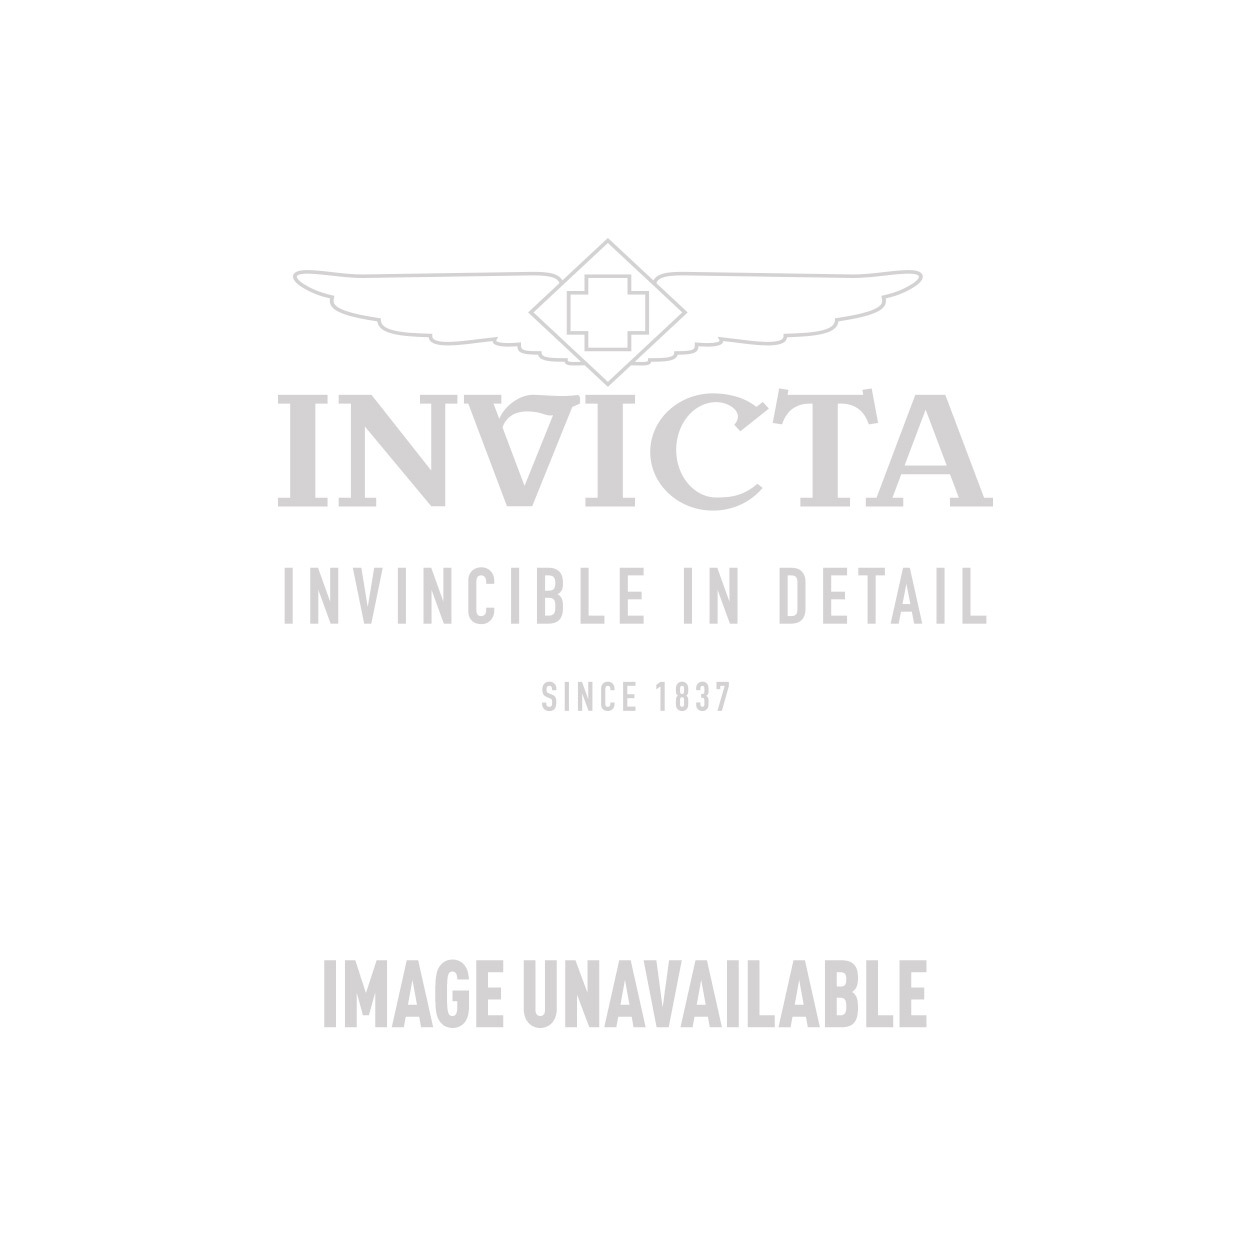 Invicta Angel Swiss Movement Quartz Watch - Rose Gold, Stainless Steel case with Steel, Rose Gold tone Stainless Steel band - Model 0549